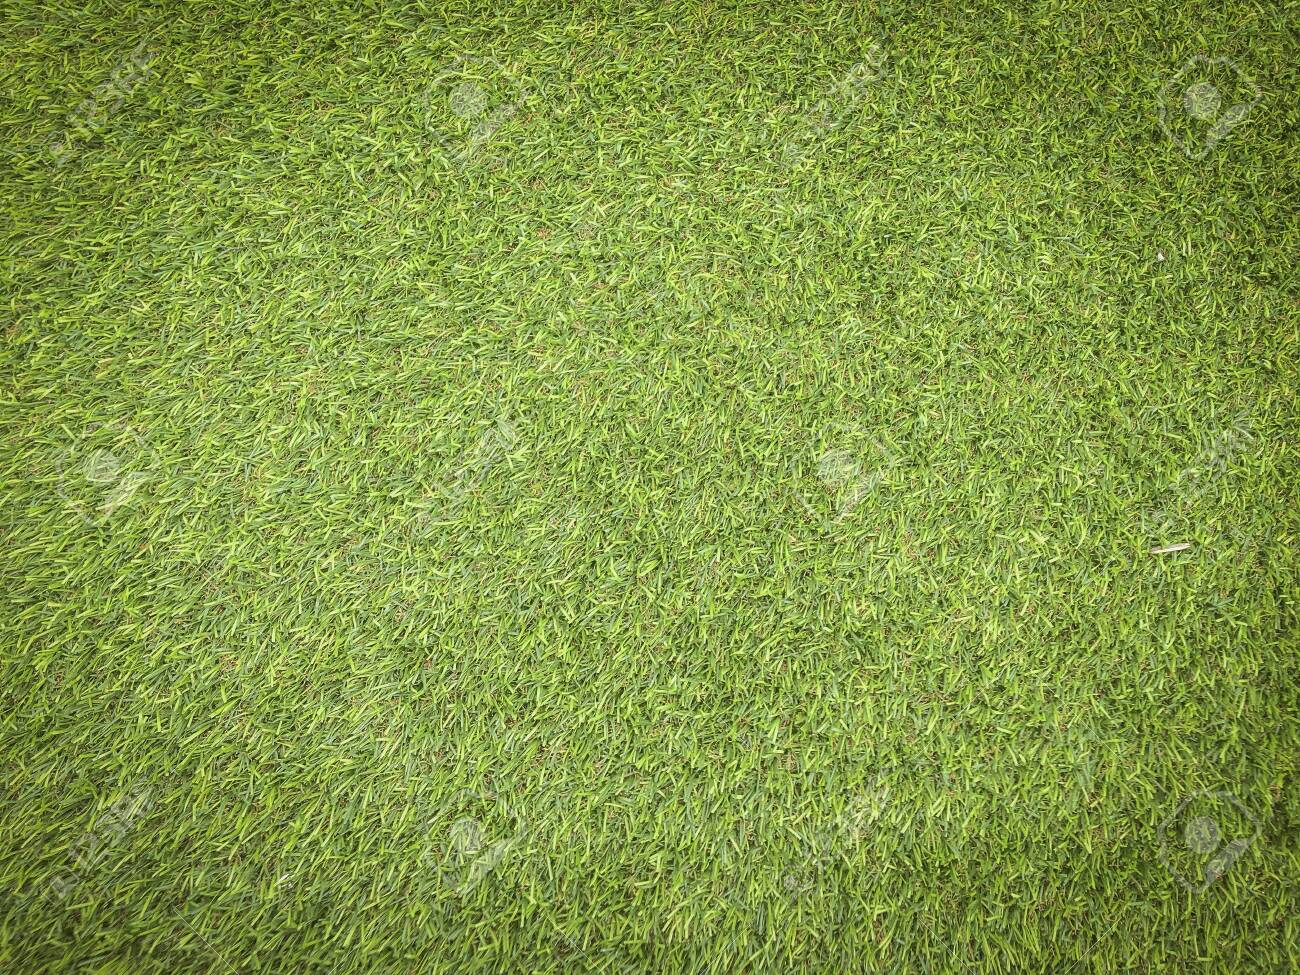 Nature green grass texture background for design. Eco concept. - 139925874